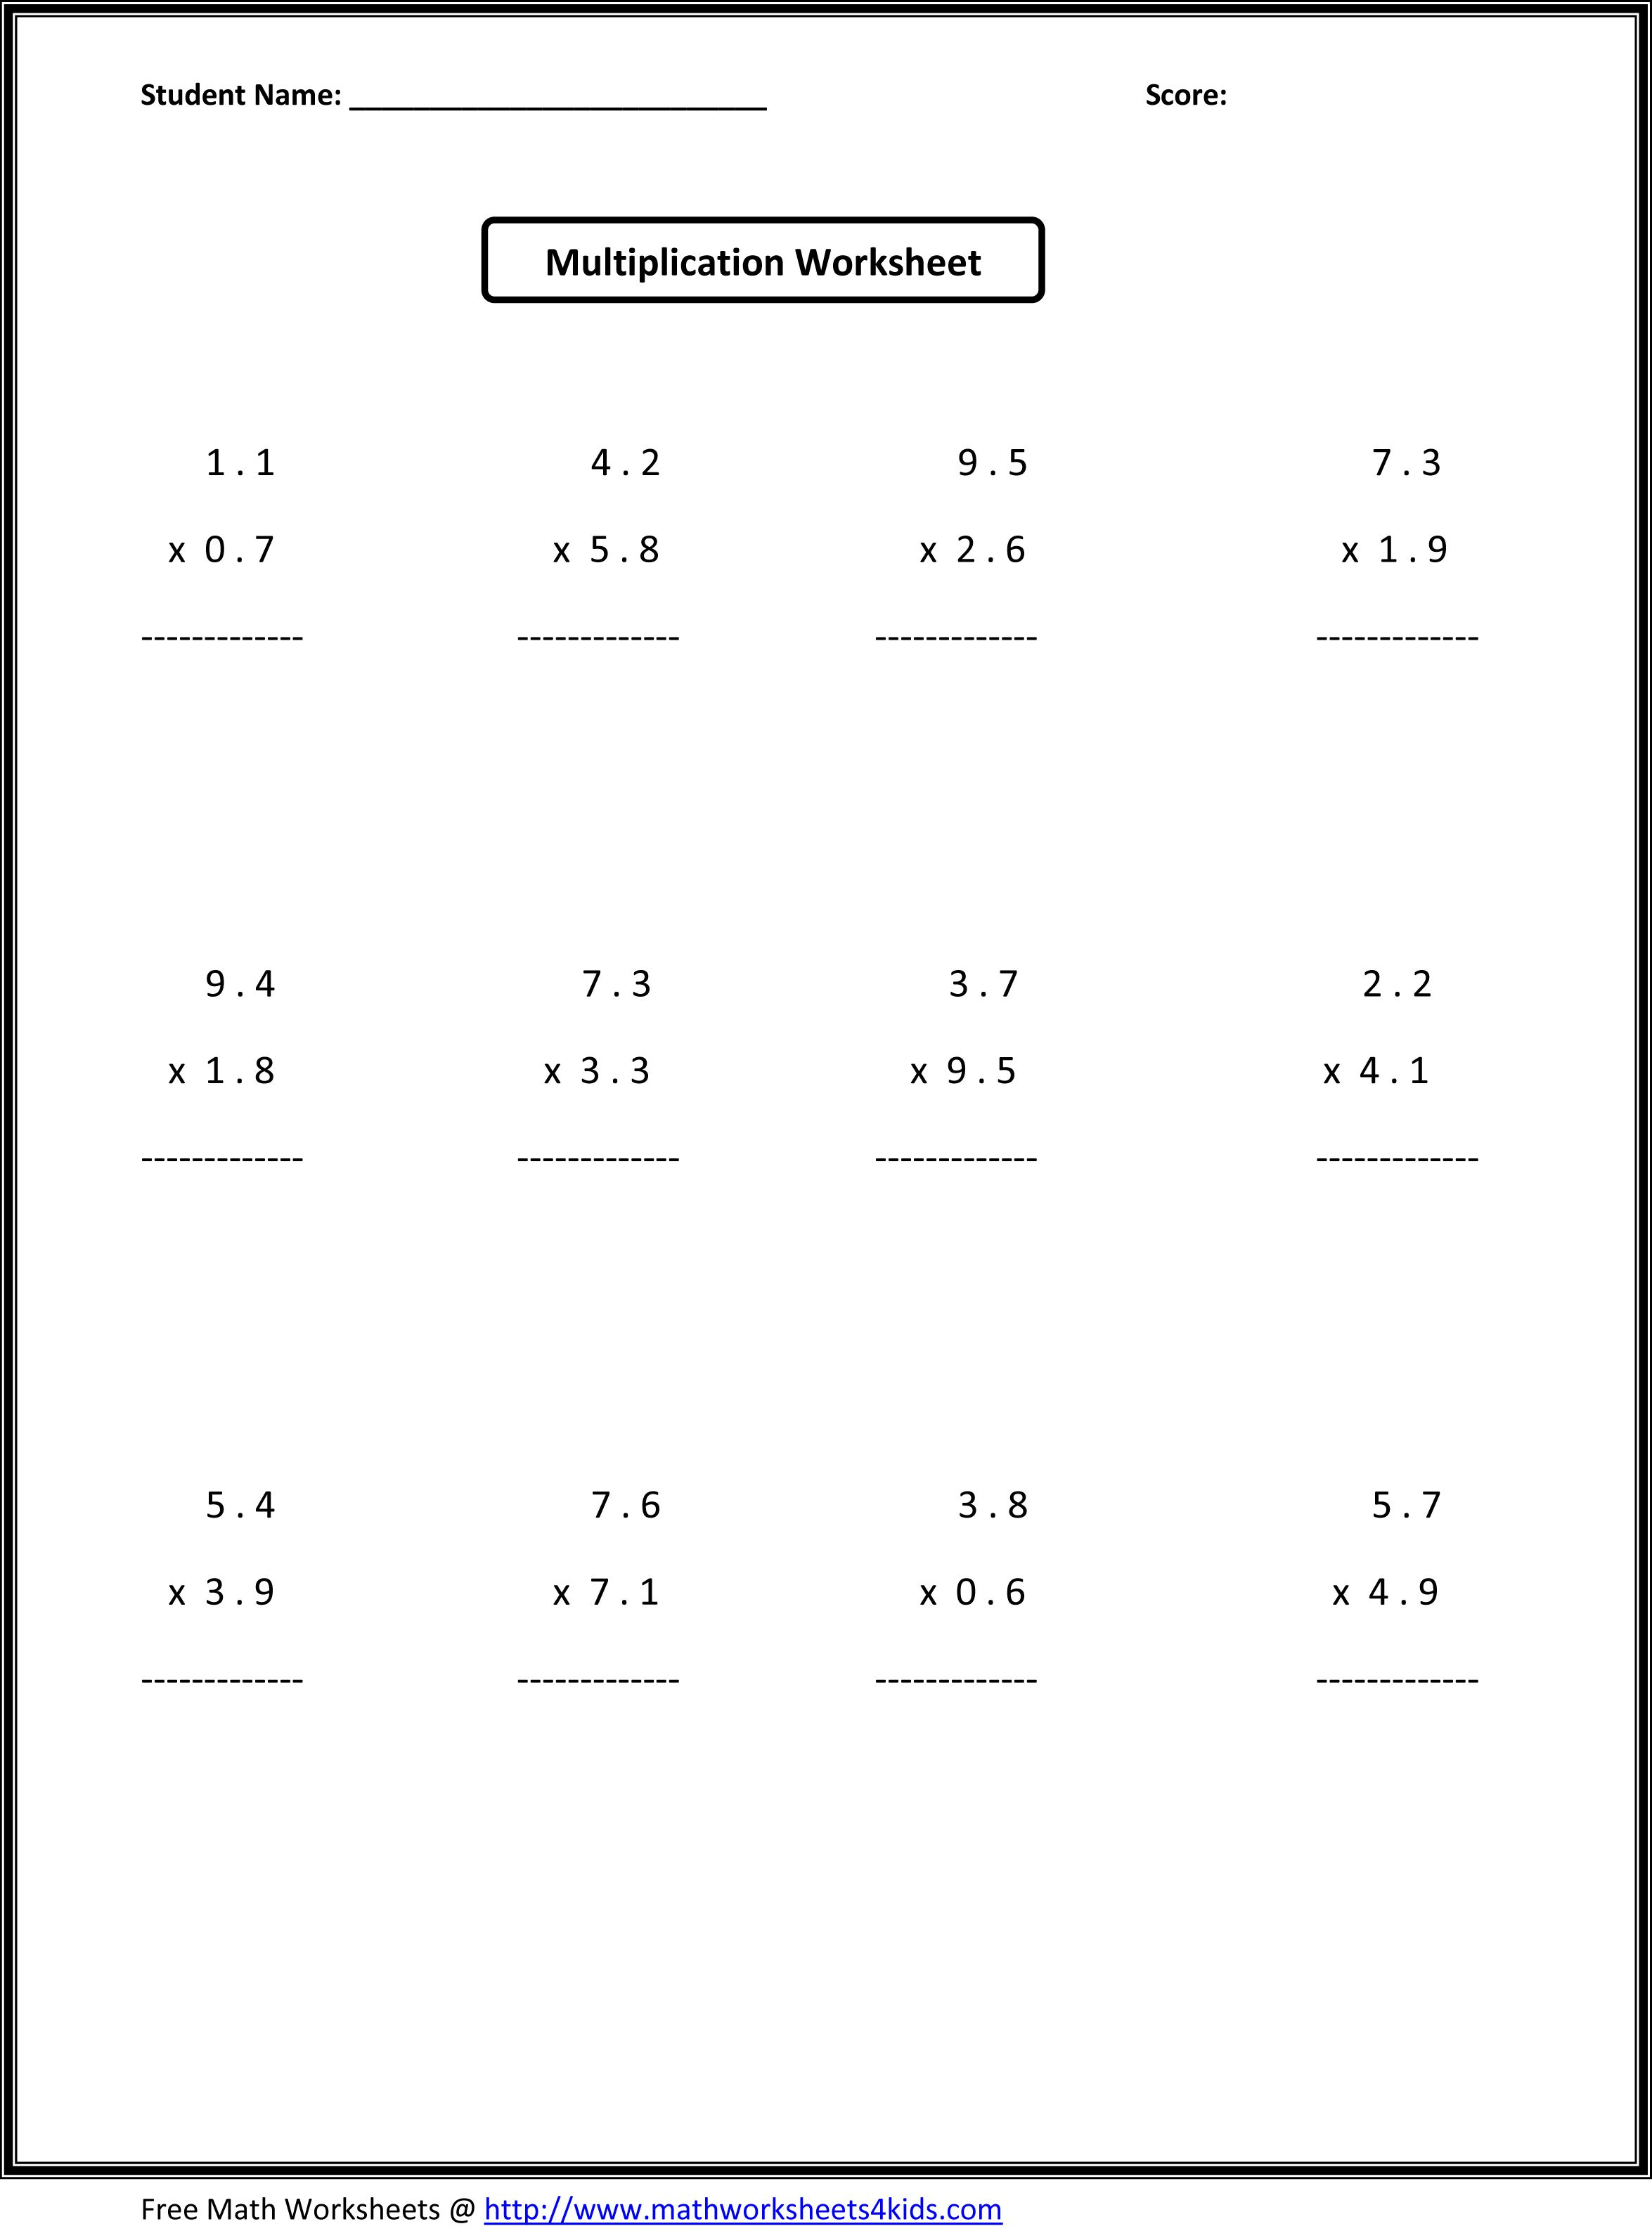 7Th Grade Math Worksheets | Value Worksheets Absolute Value - Free | Free Printable Multiplication Worksheets For 6Th Grade